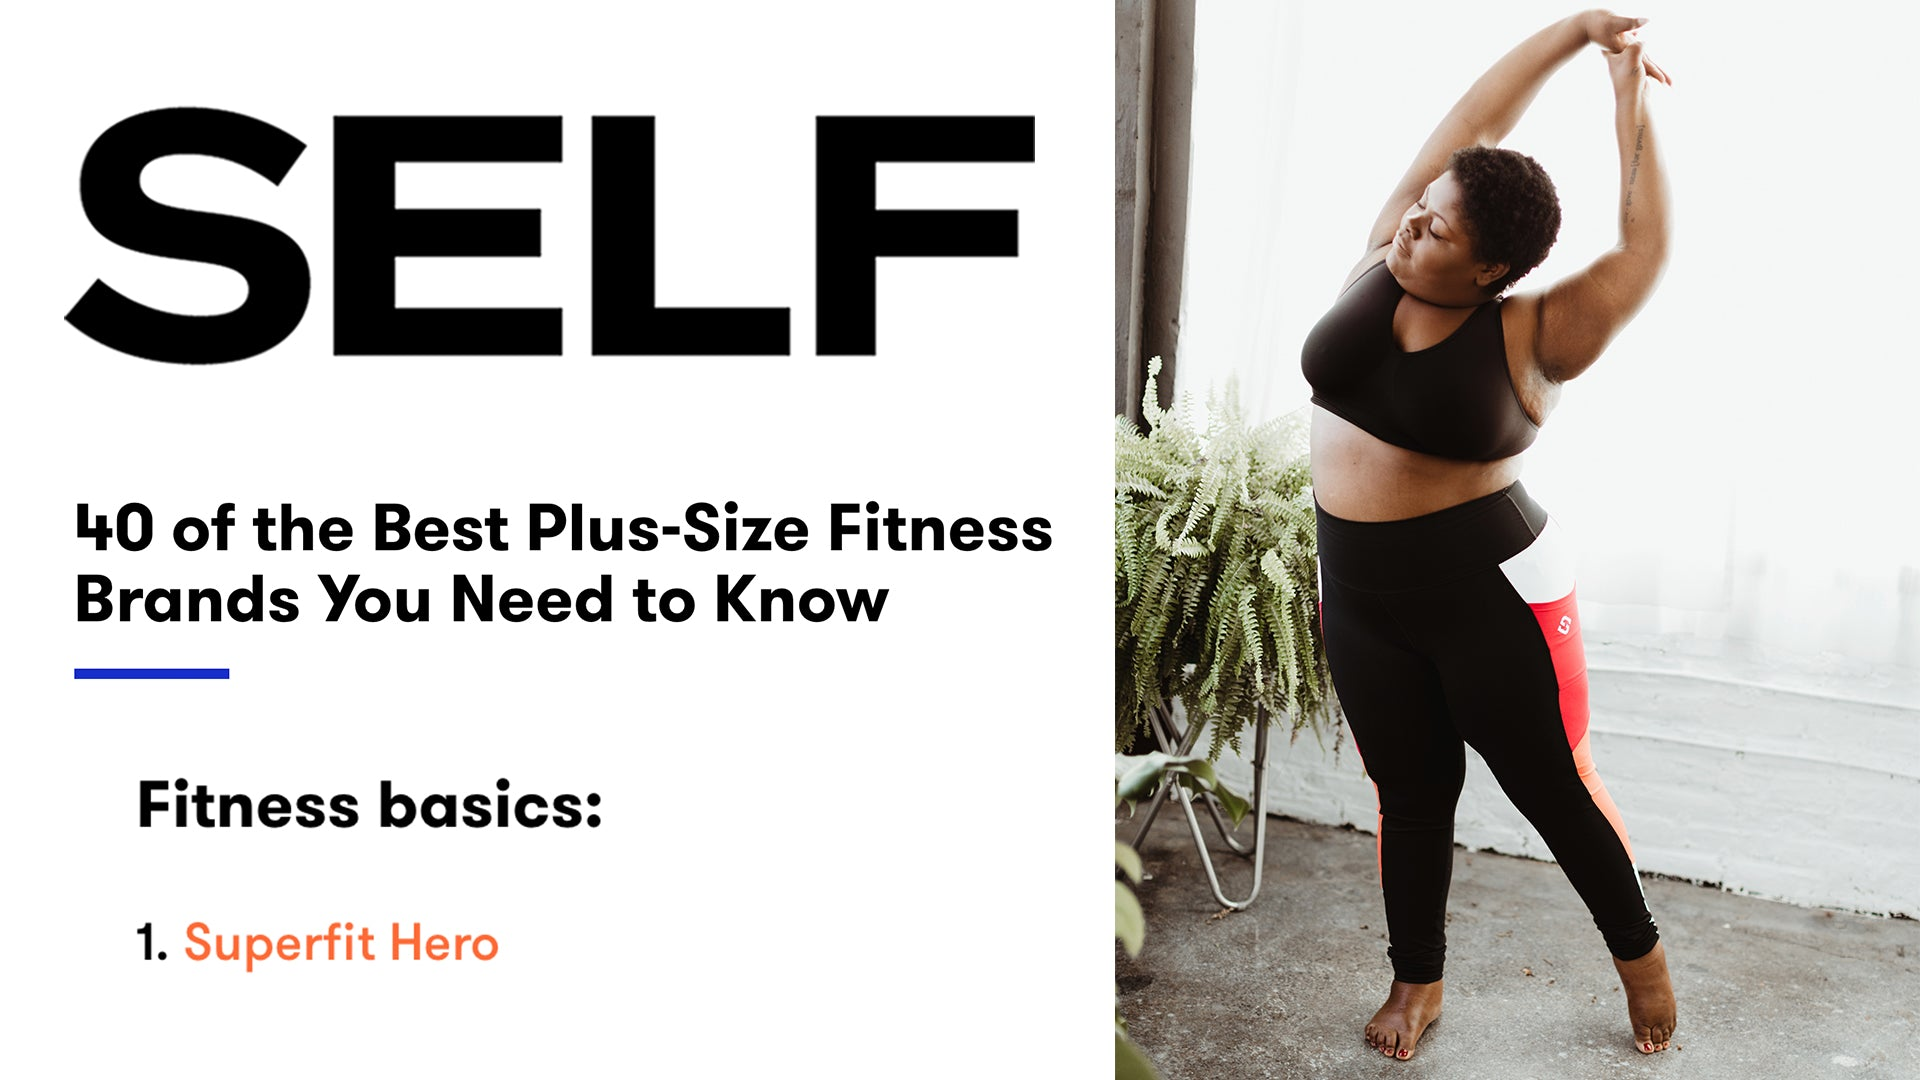 Superfit Hero is #1 on SELF Magazine's List of Best Plus Size Fitness Brands